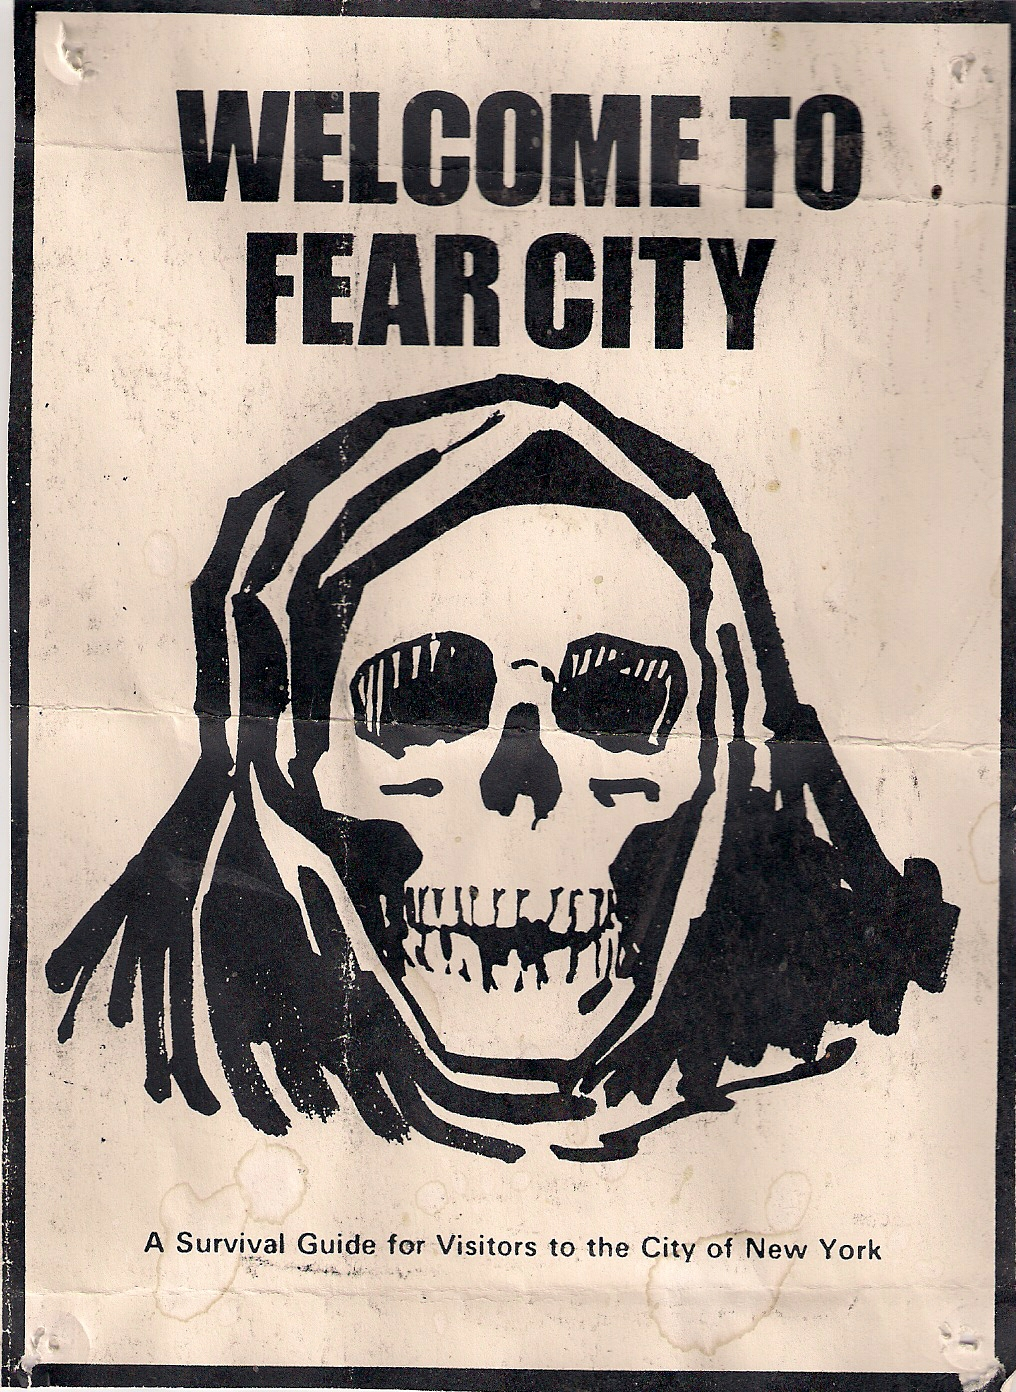 Cover of FEAR CITY survival guide